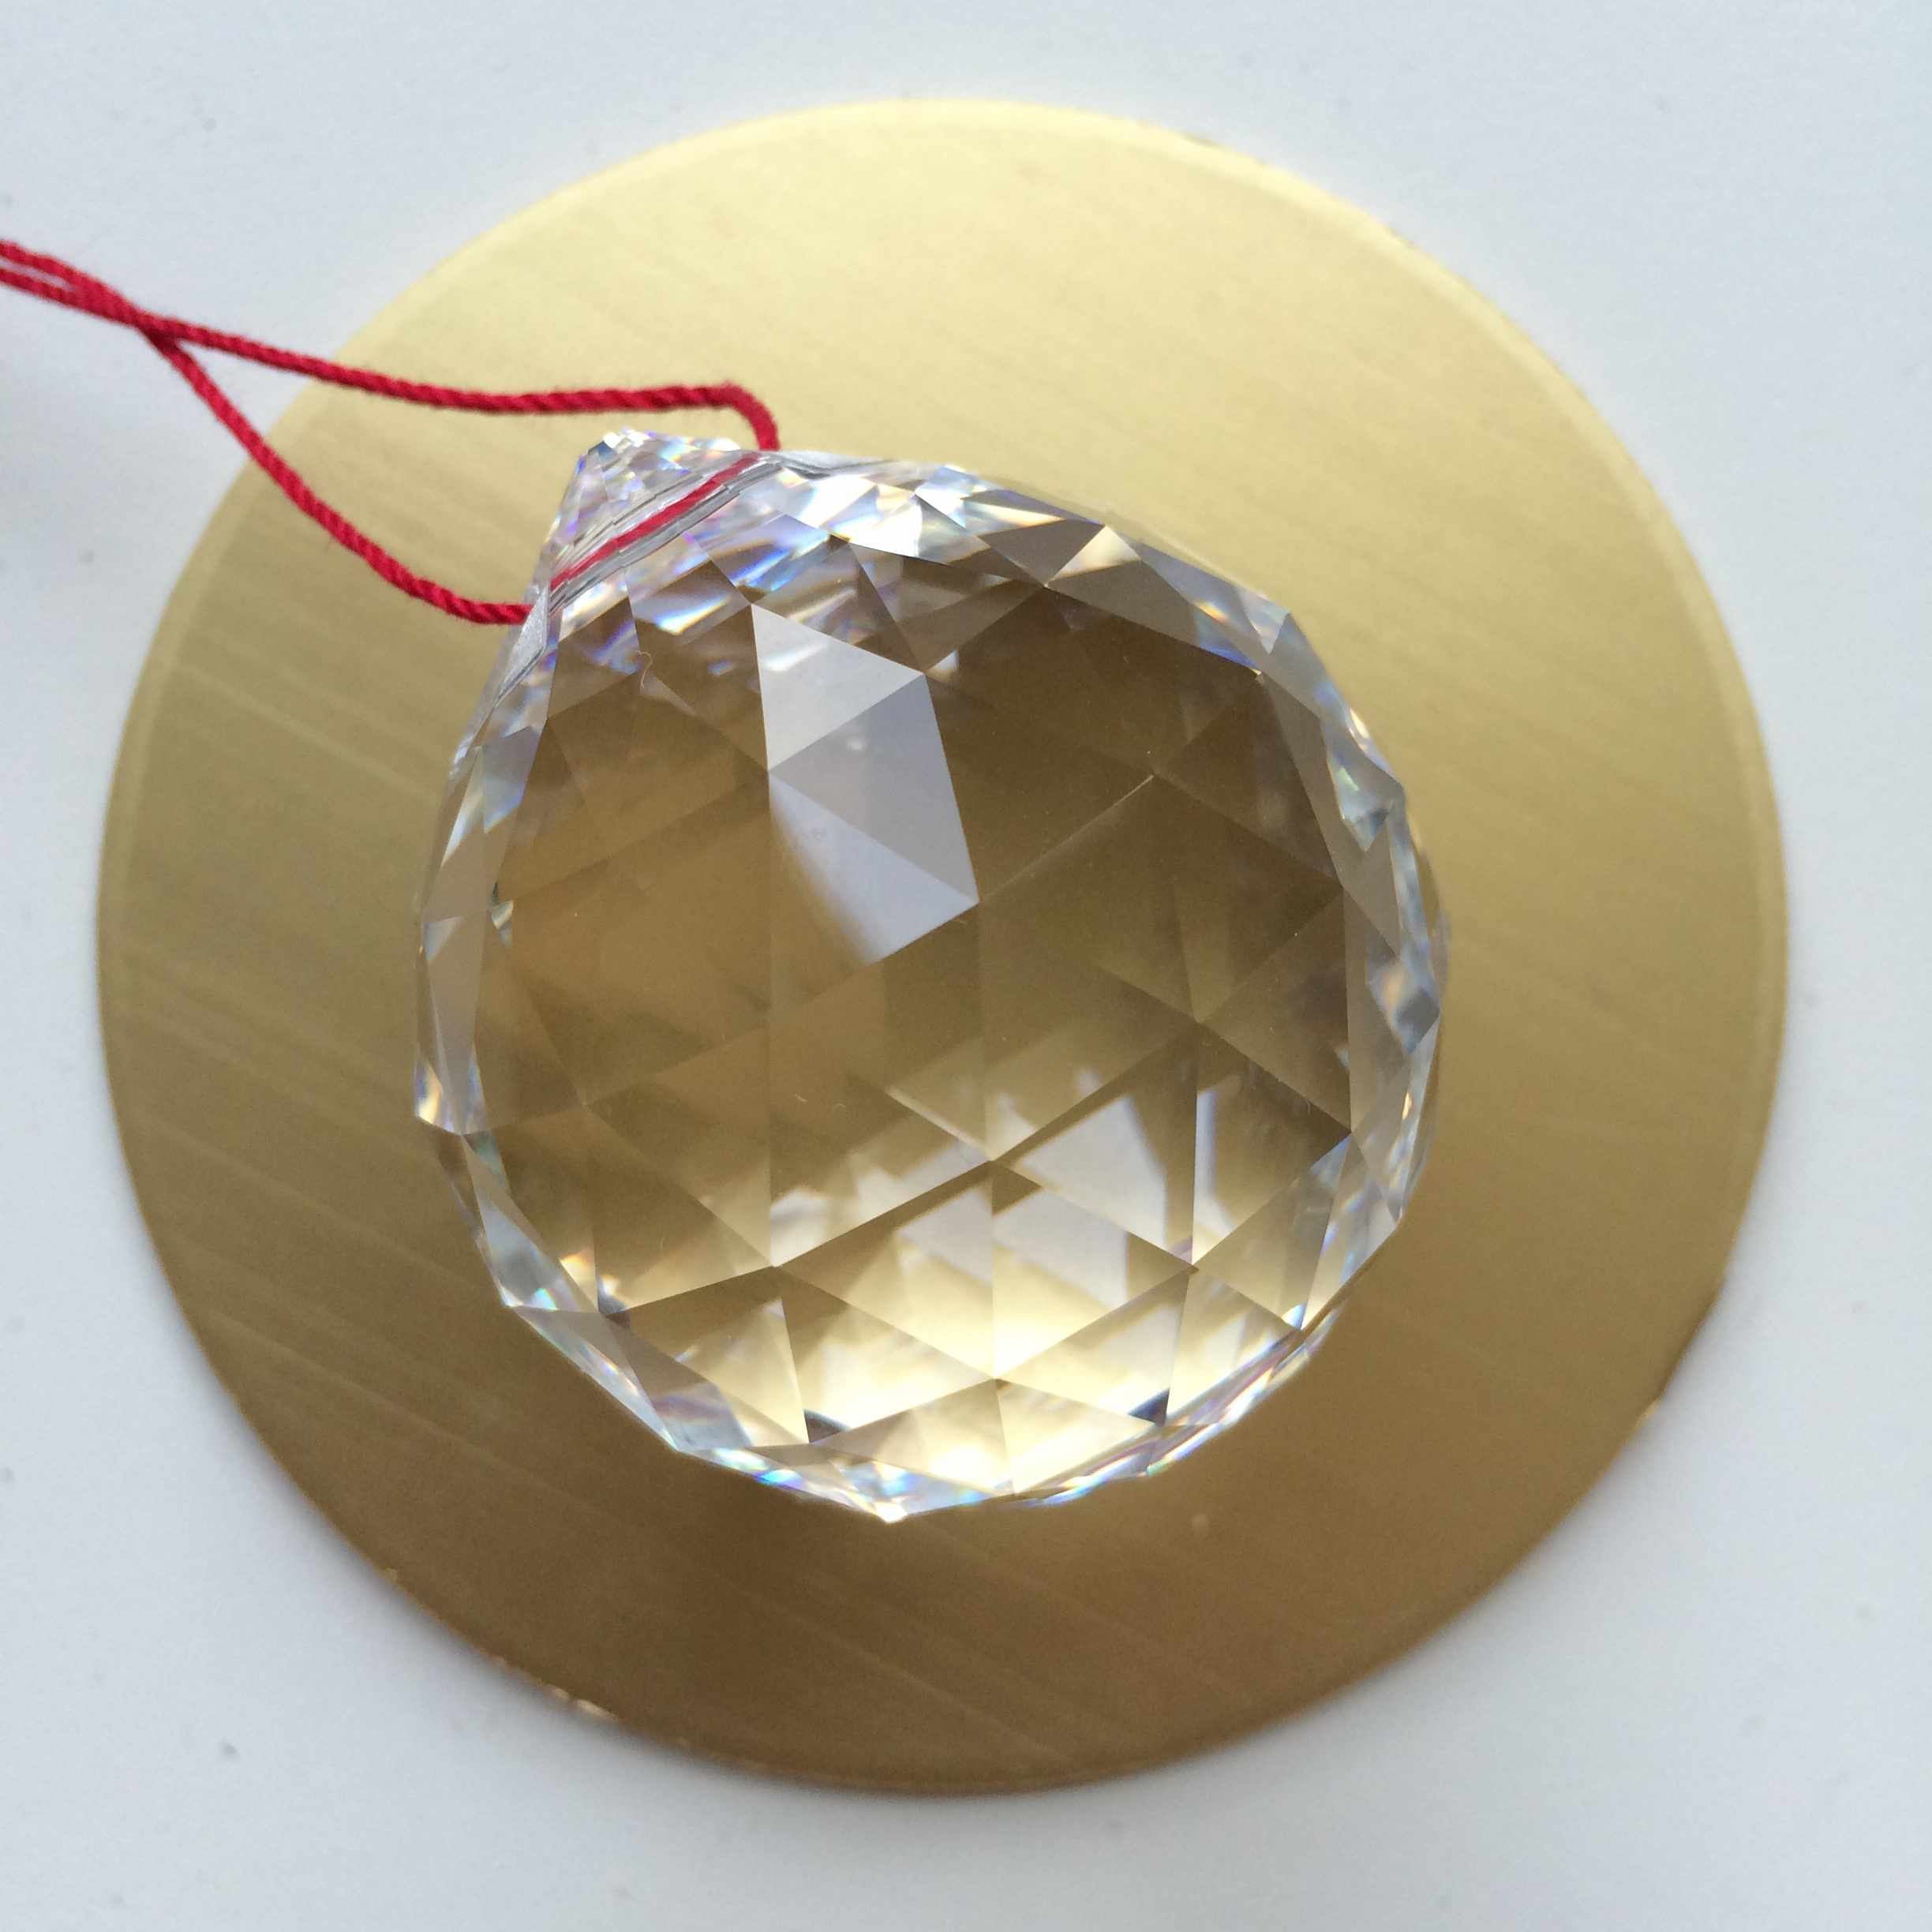 feng shui crystal ball on a red string